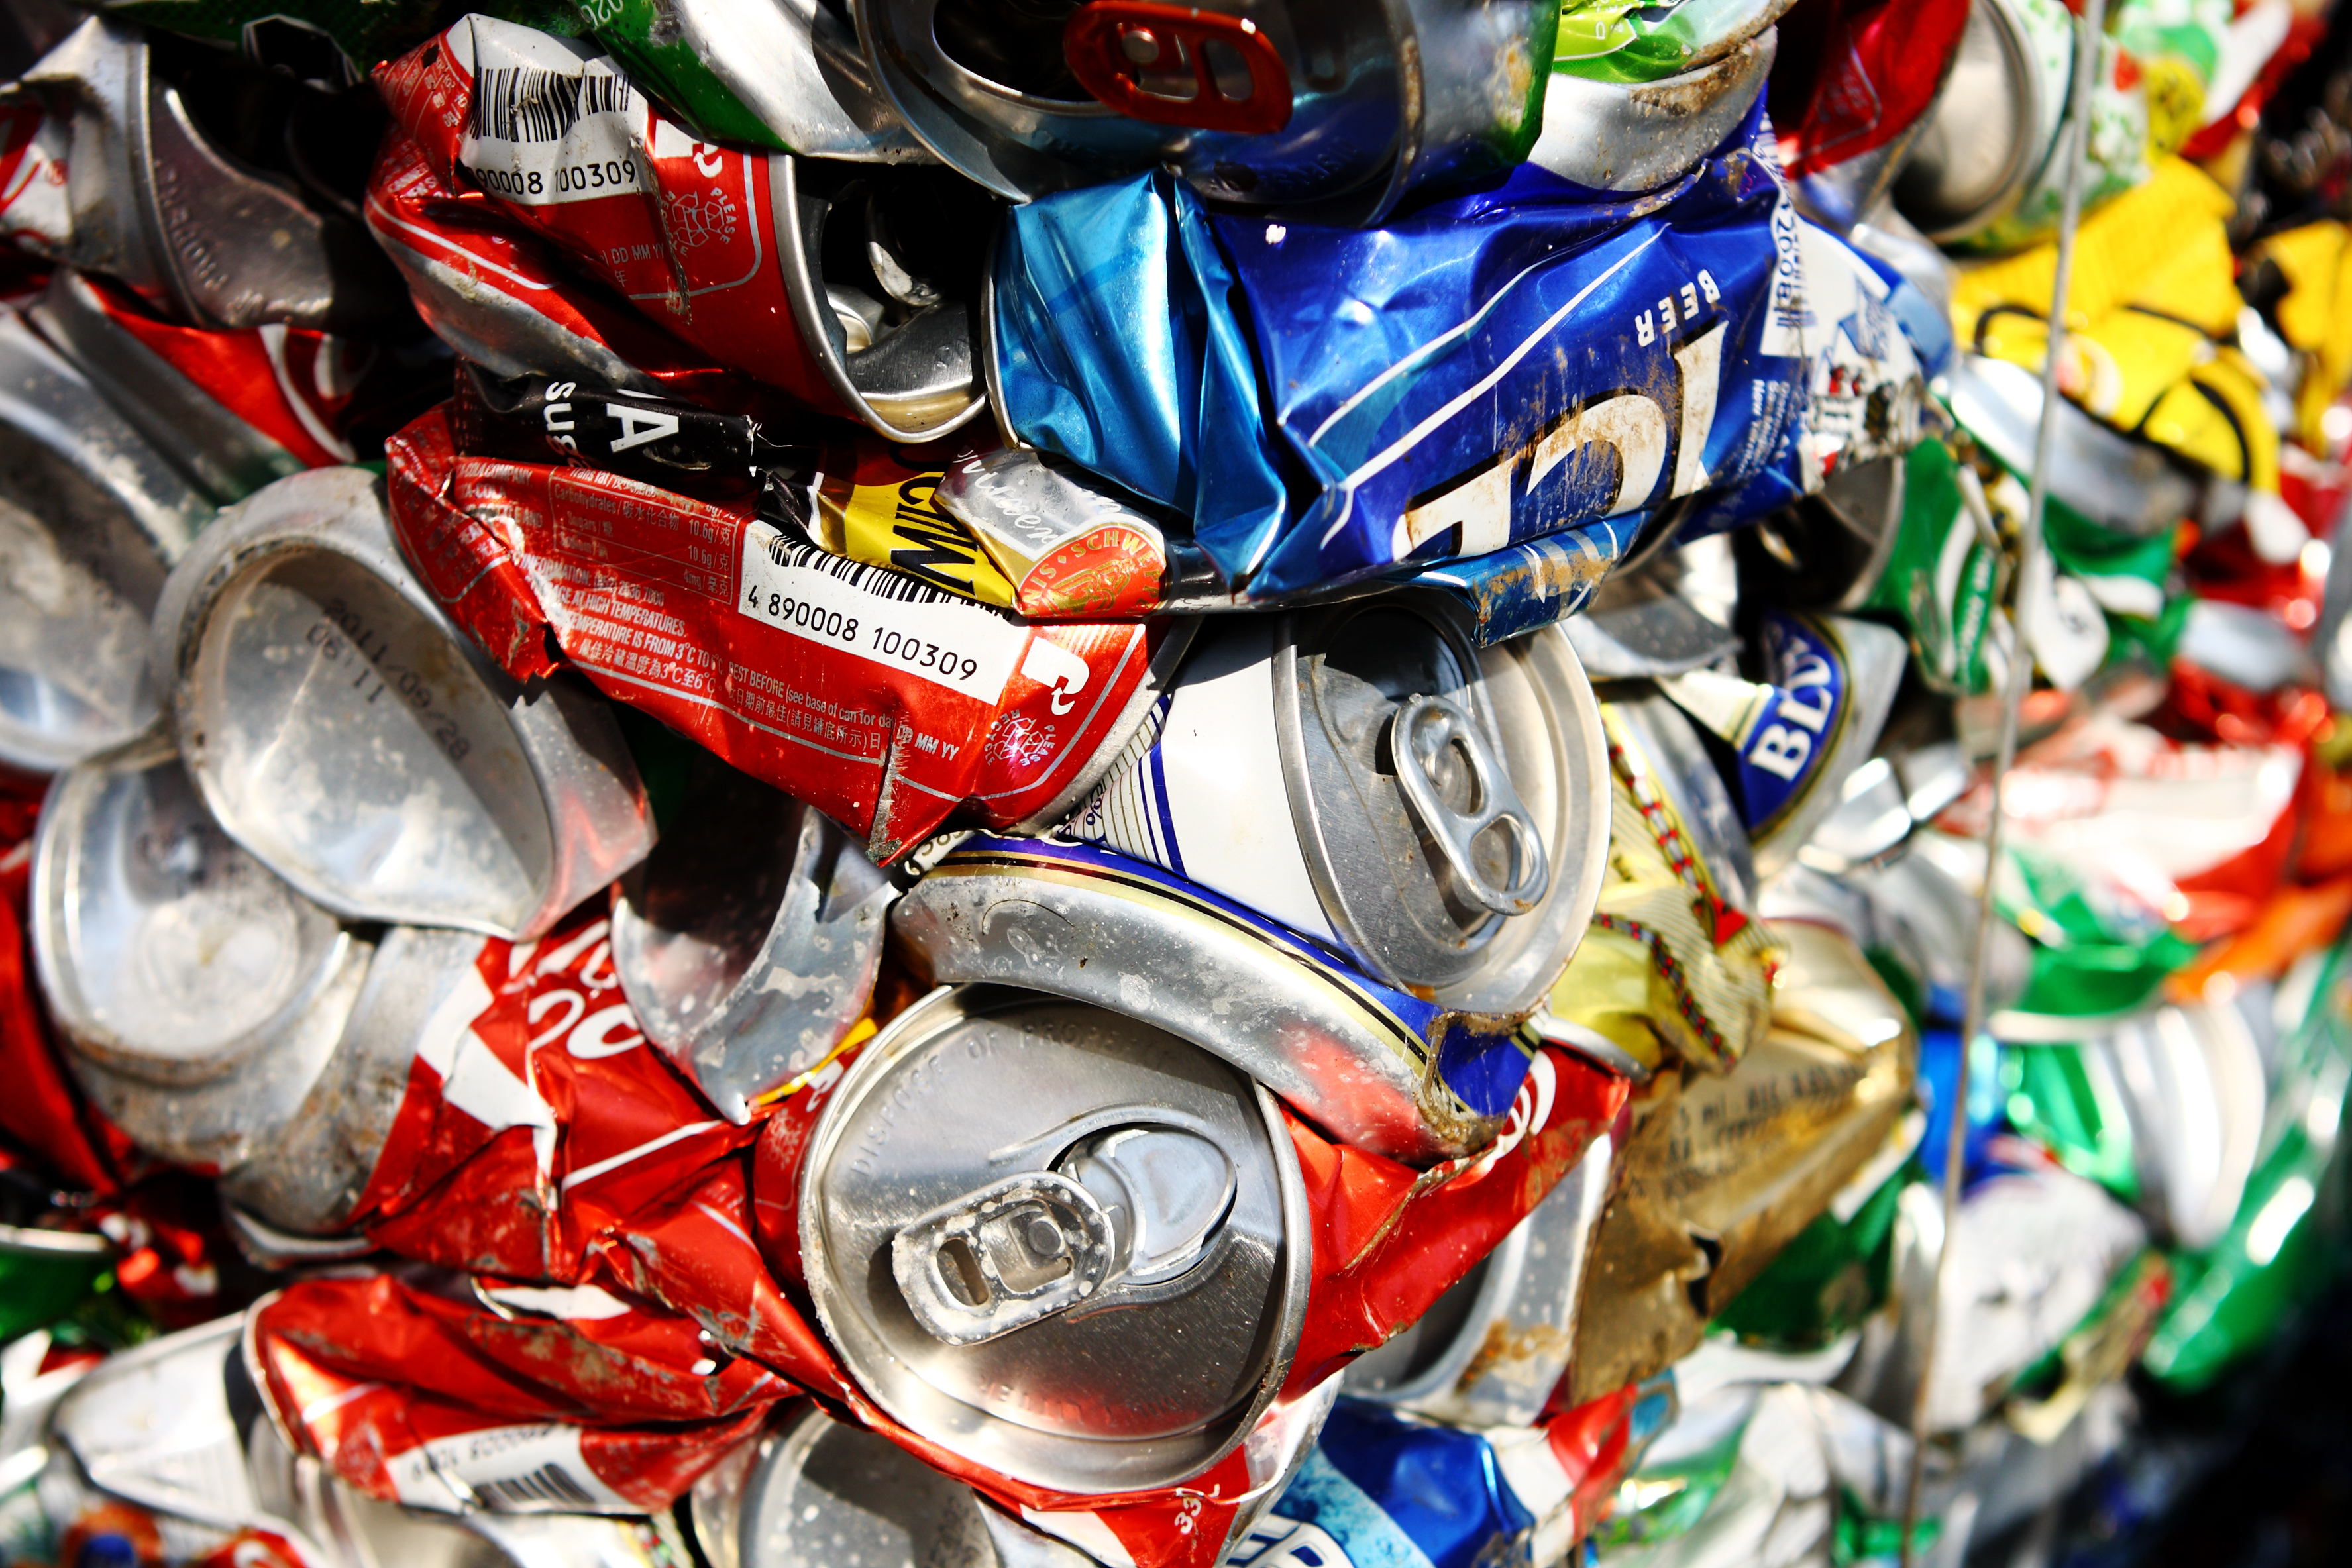 National Waste and Recycling Industry Council to advocate for industry